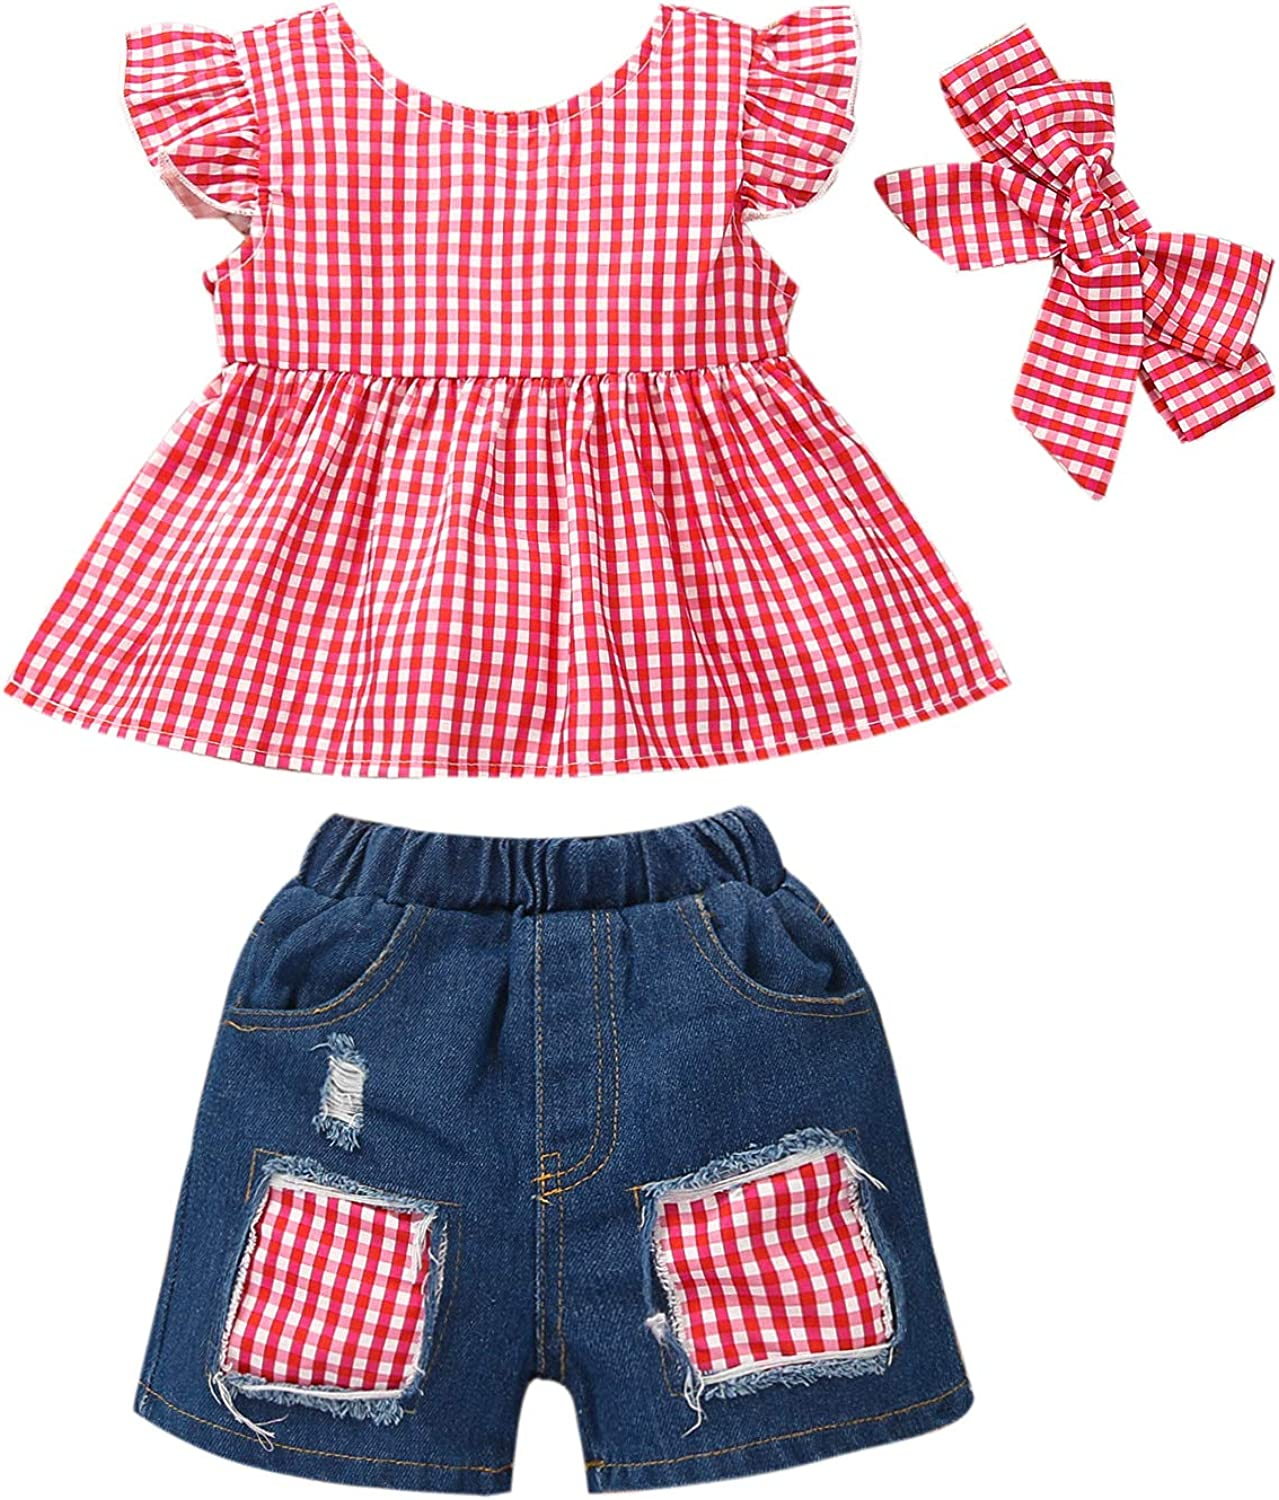 Toddler Baby Girl Ruffle Outfits Shorts+Bo Sleeve shipfree Tops+Denim Fly OFFicial mail order